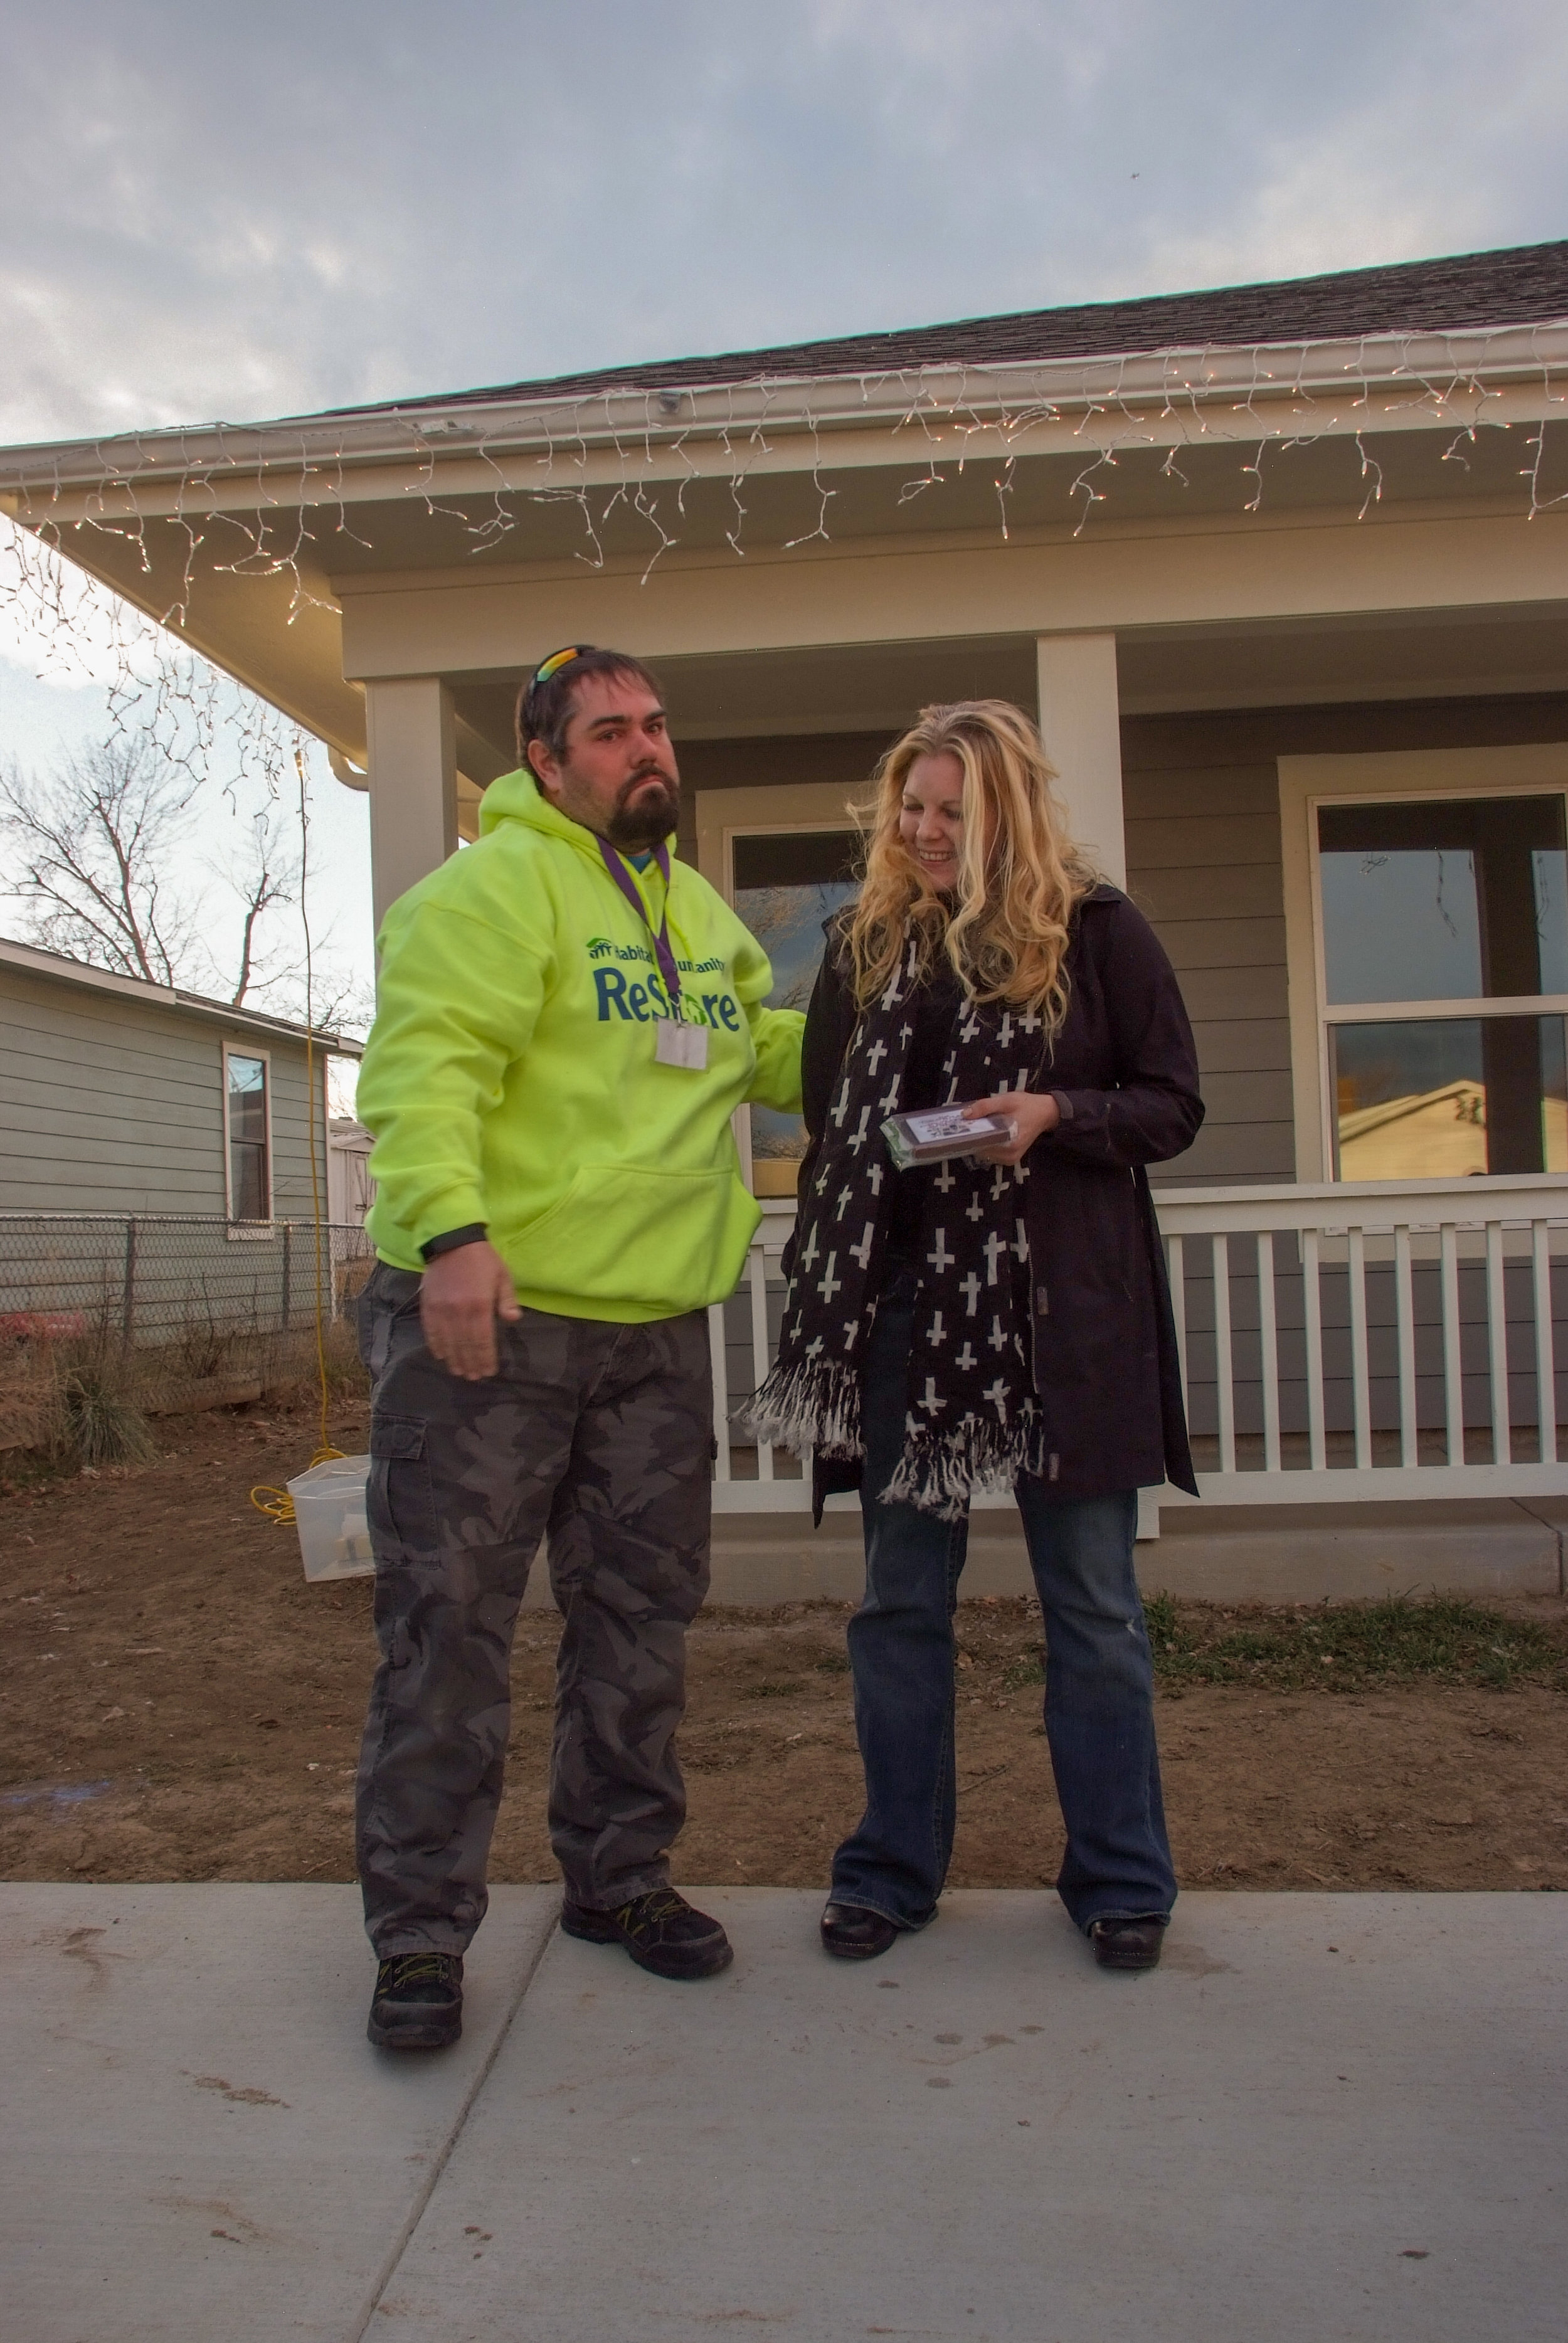 """12/28/19 - Tim has been volunteering with St. Vrain ReStore for over ten years.  Last Friday, he presented the ReStore gift card to the new Habitat homeowner at the dedication. Tim got to know the Ericksons via their """"sweat equity"""" time at the ReStore. Thank you, Tim, for your years of service and for your commitment to Habitat!"""